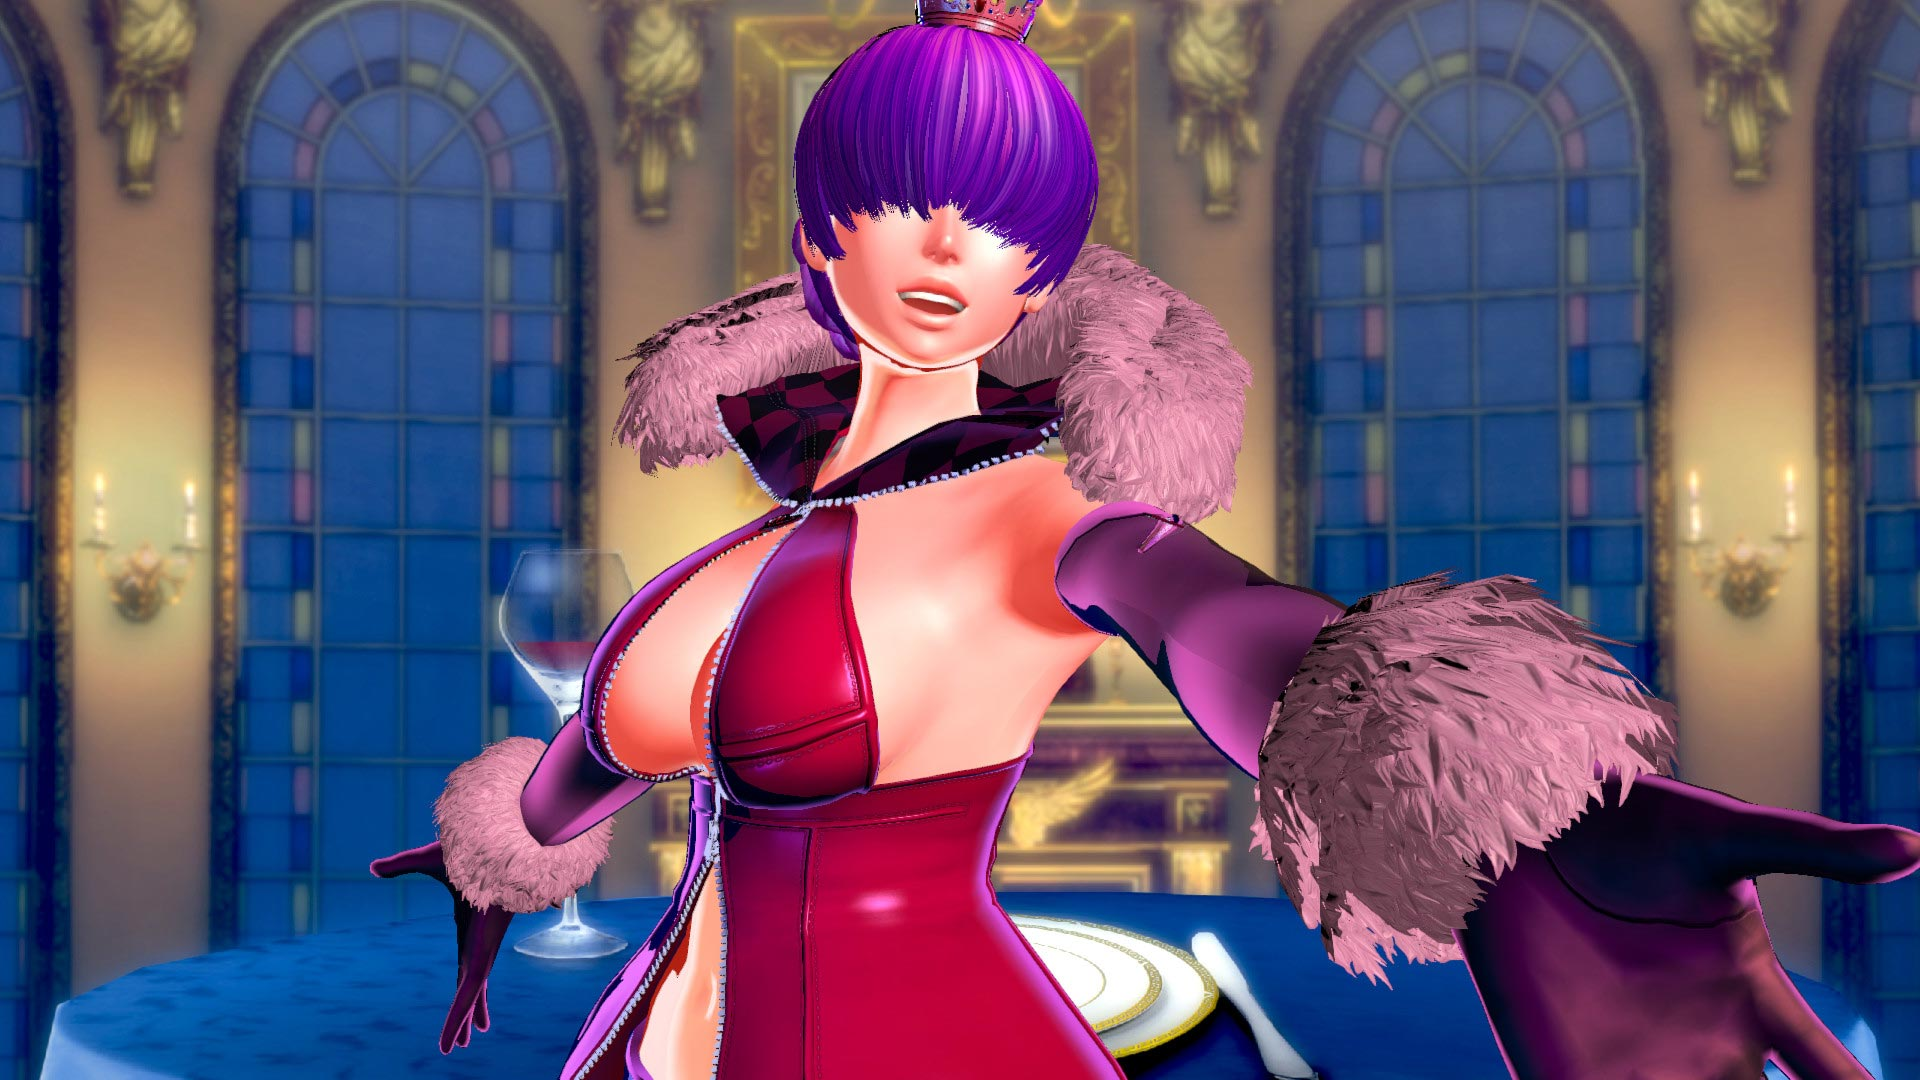 SNK Heroines Tag Team Frenzy Steam screenshots 6 out of 6 image gallery